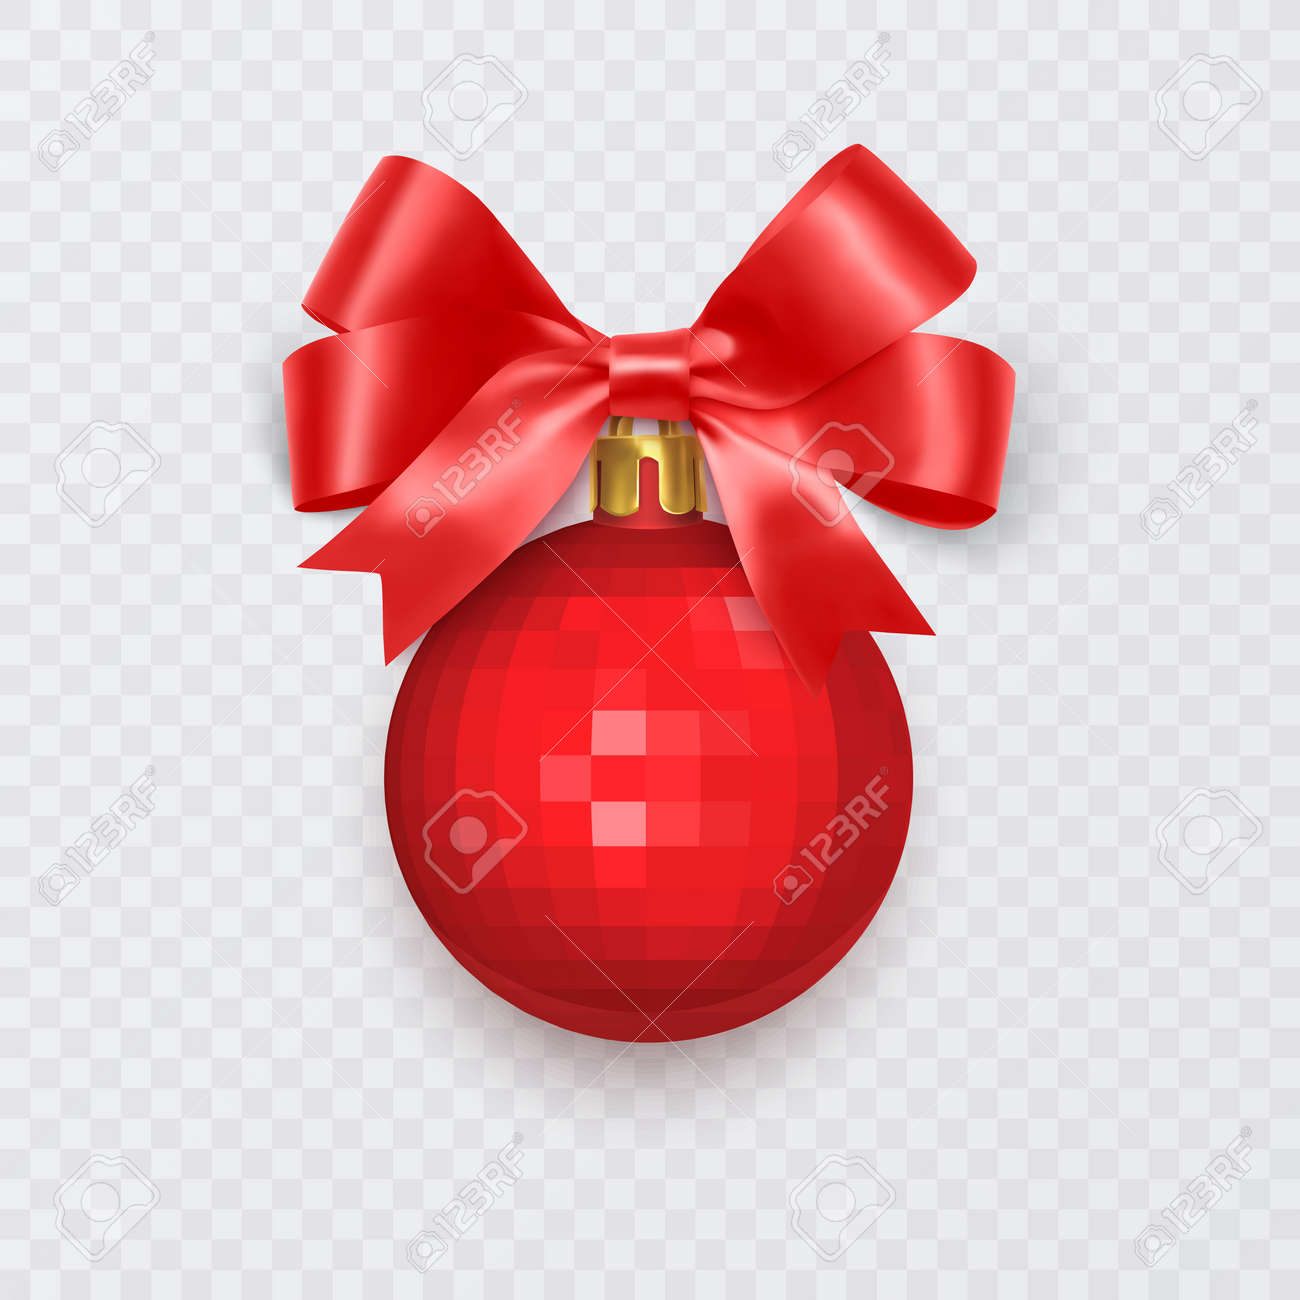 Red Christmas ball with bow. New Year decoration isolated on white background, Vector illustration - 173922502